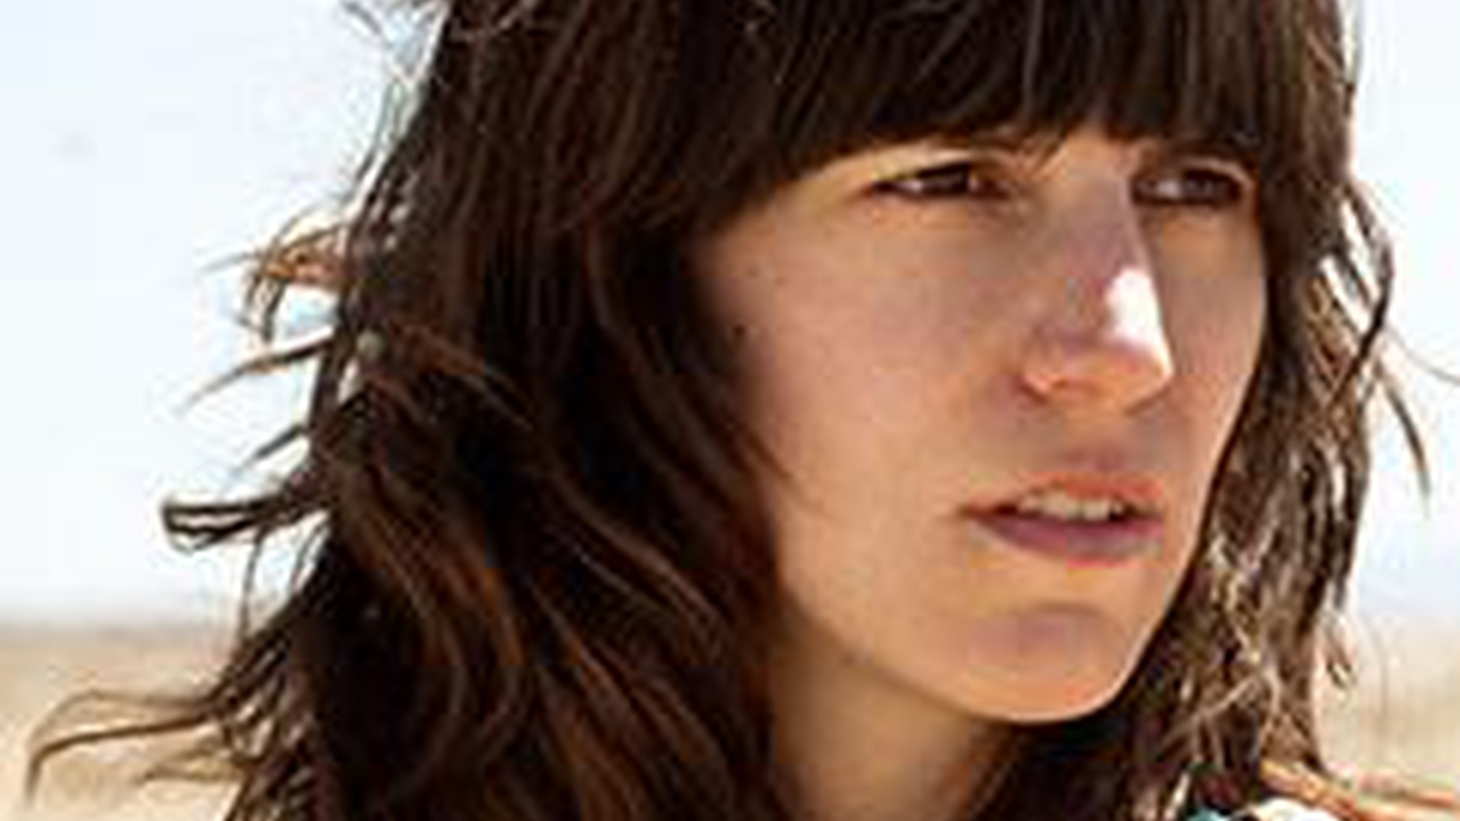 On Personal Record, Eleanor Friedberger's palette expands to include a wider array of themes and a sound that's sweet, simple and timeless.